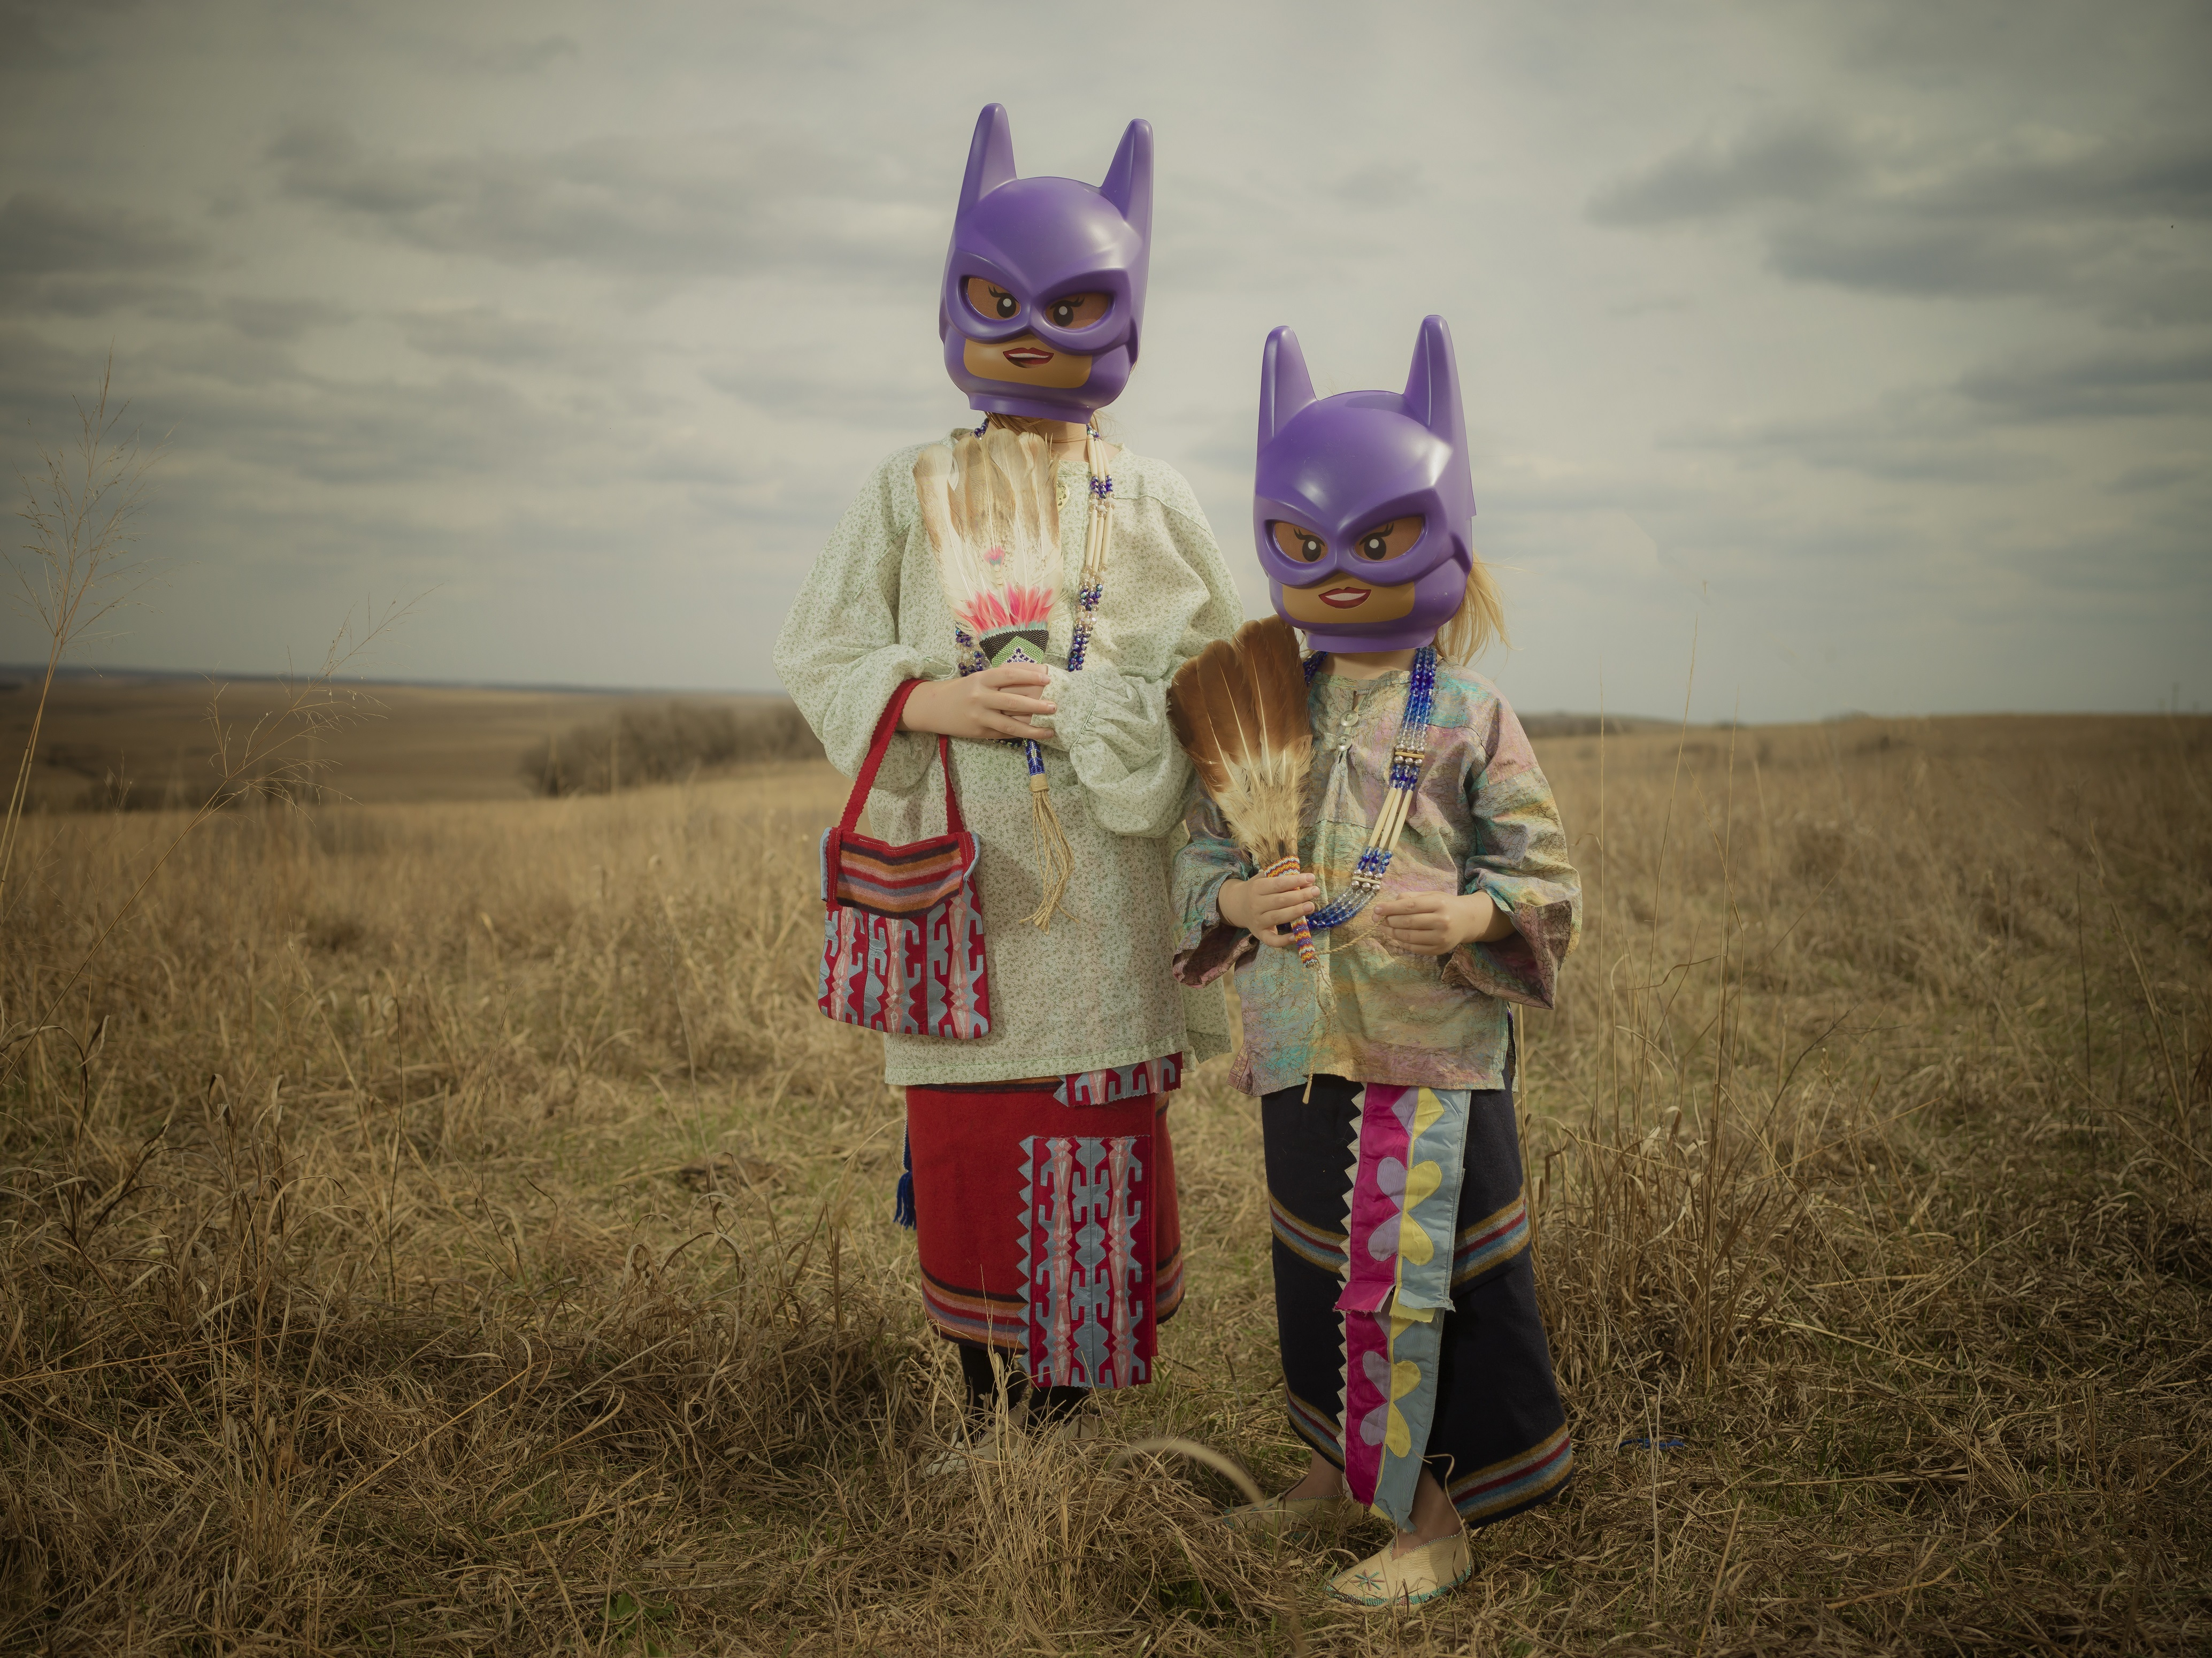 Two children wearing tribal regalia stand in the middle of a prairie wearing Lego Batgirl helmets